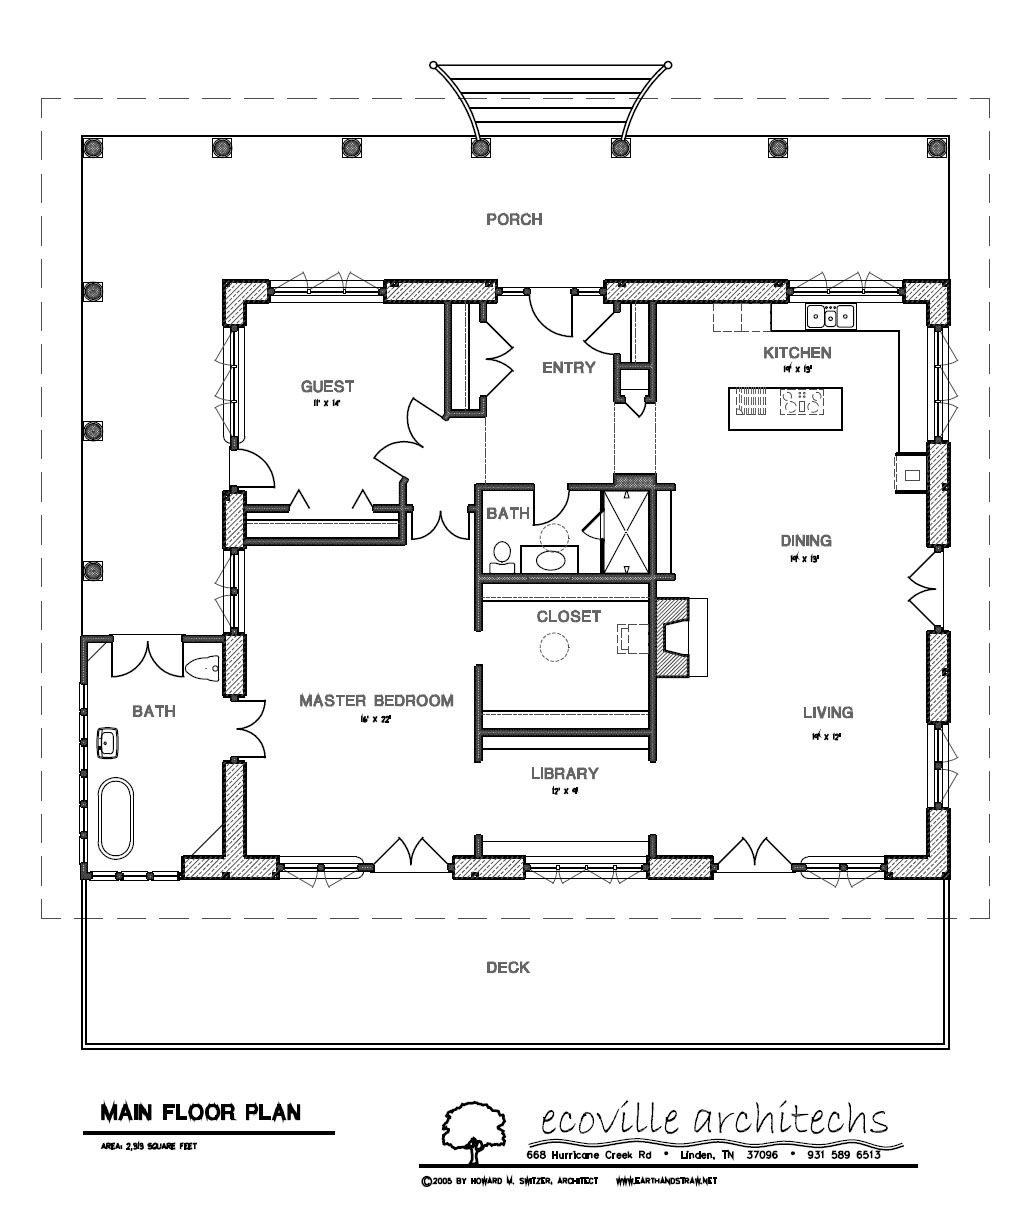 Two Bedroom House Plans For Small Land: Two Bedroom House Plans Spacious  Porch Large Bathroom Spacious Deck